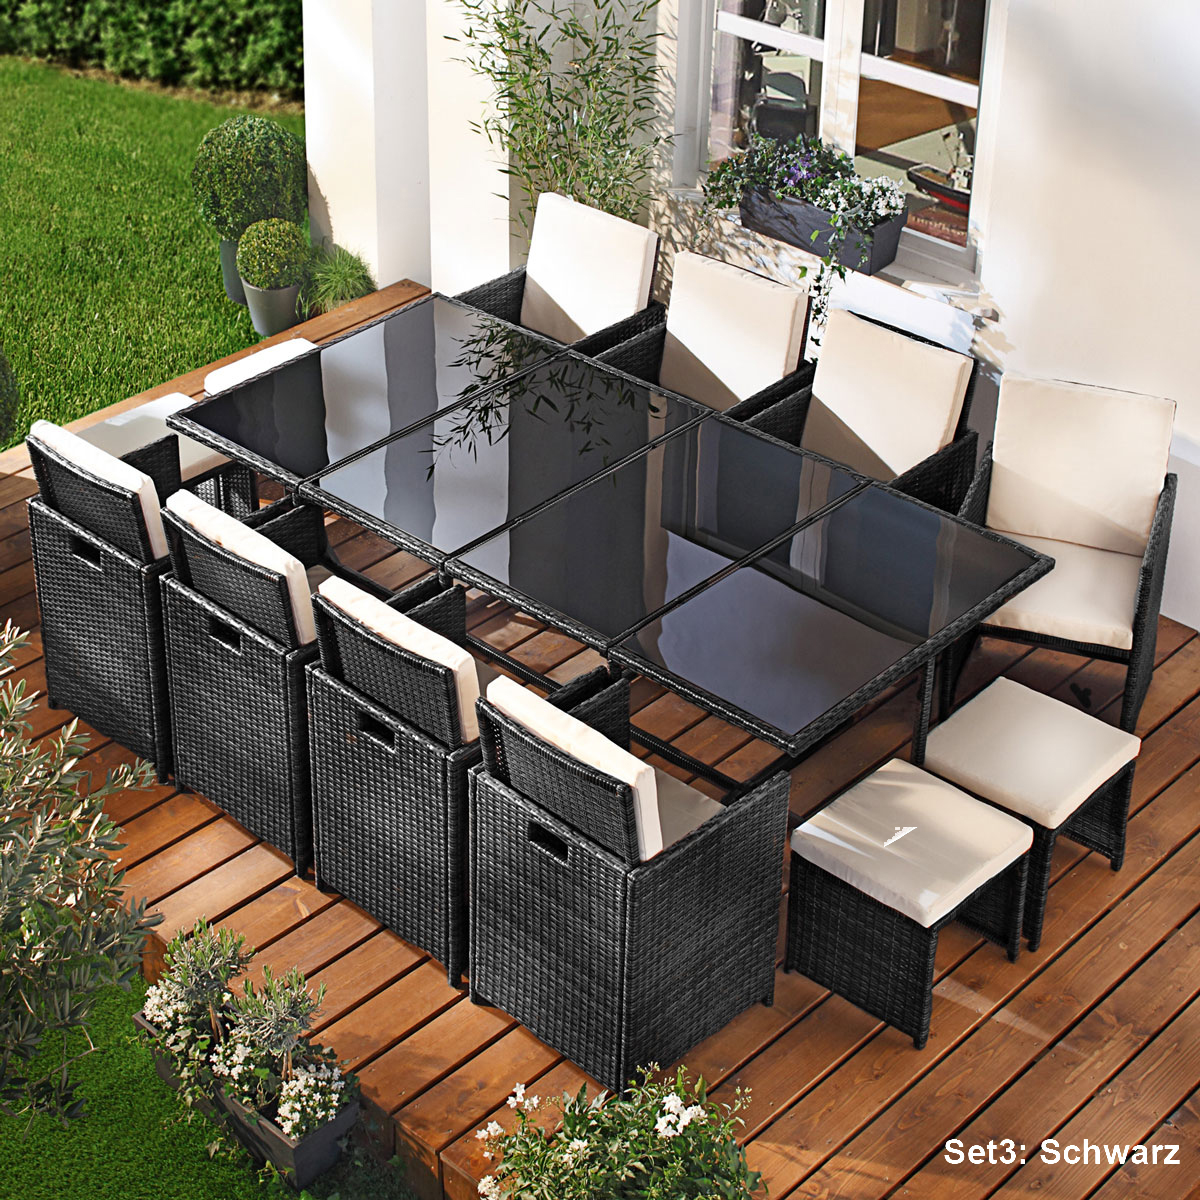 poly rattan sitzgruppe garnitur lounge gartenm bel sitzgarnitur gartengarnitur ebay. Black Bedroom Furniture Sets. Home Design Ideas